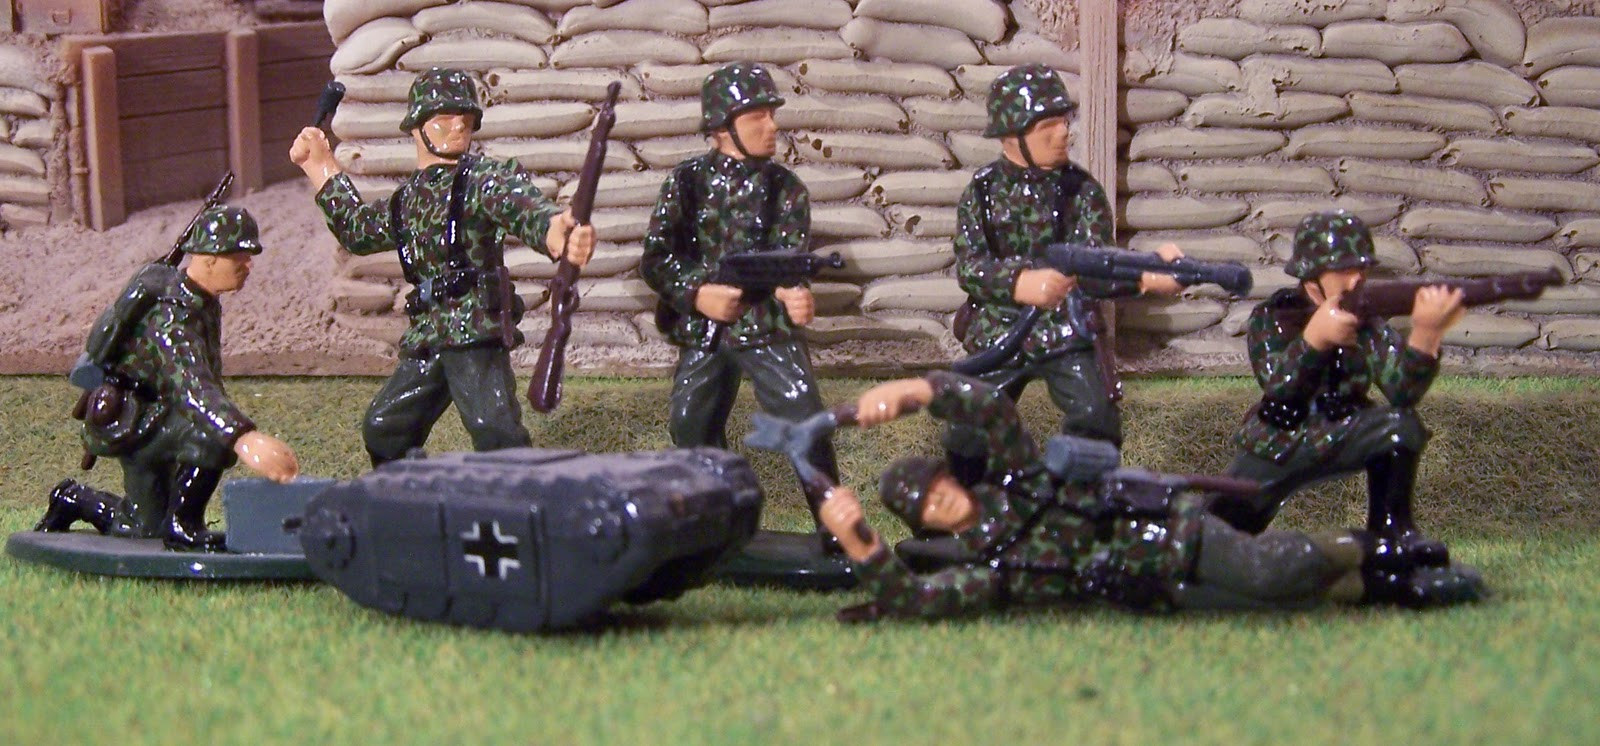 WWII Plastic Toy Soldiers: Introducing the German Combat